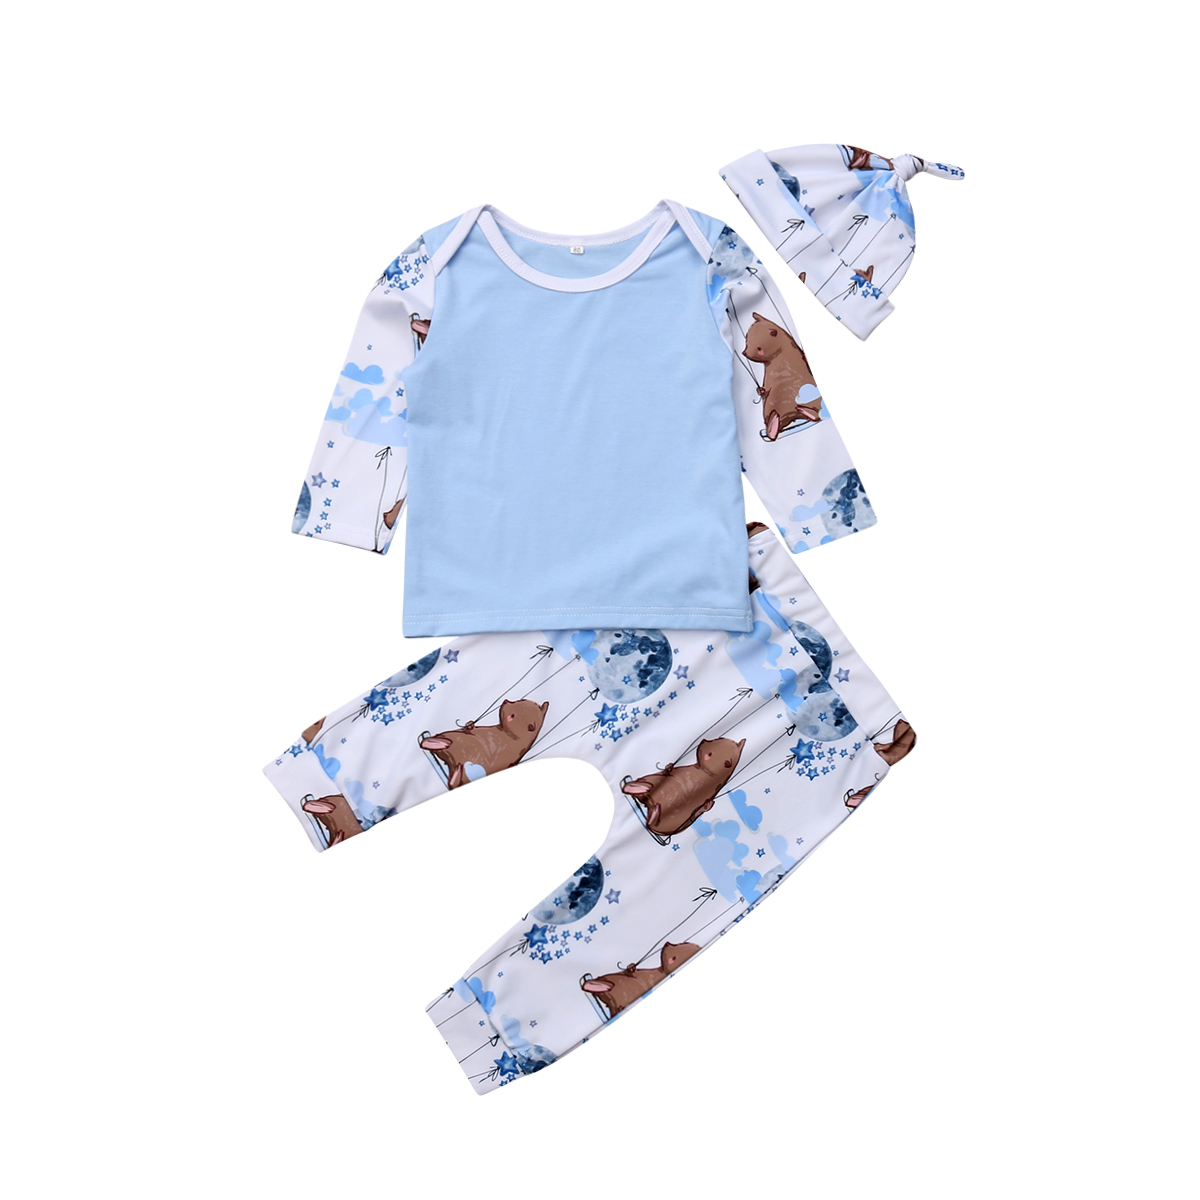 Fashion Animals Casual 3PCS Baby Girls Outfit Set Pants+Top Set Toddler Autumn Clothes Tracksuit